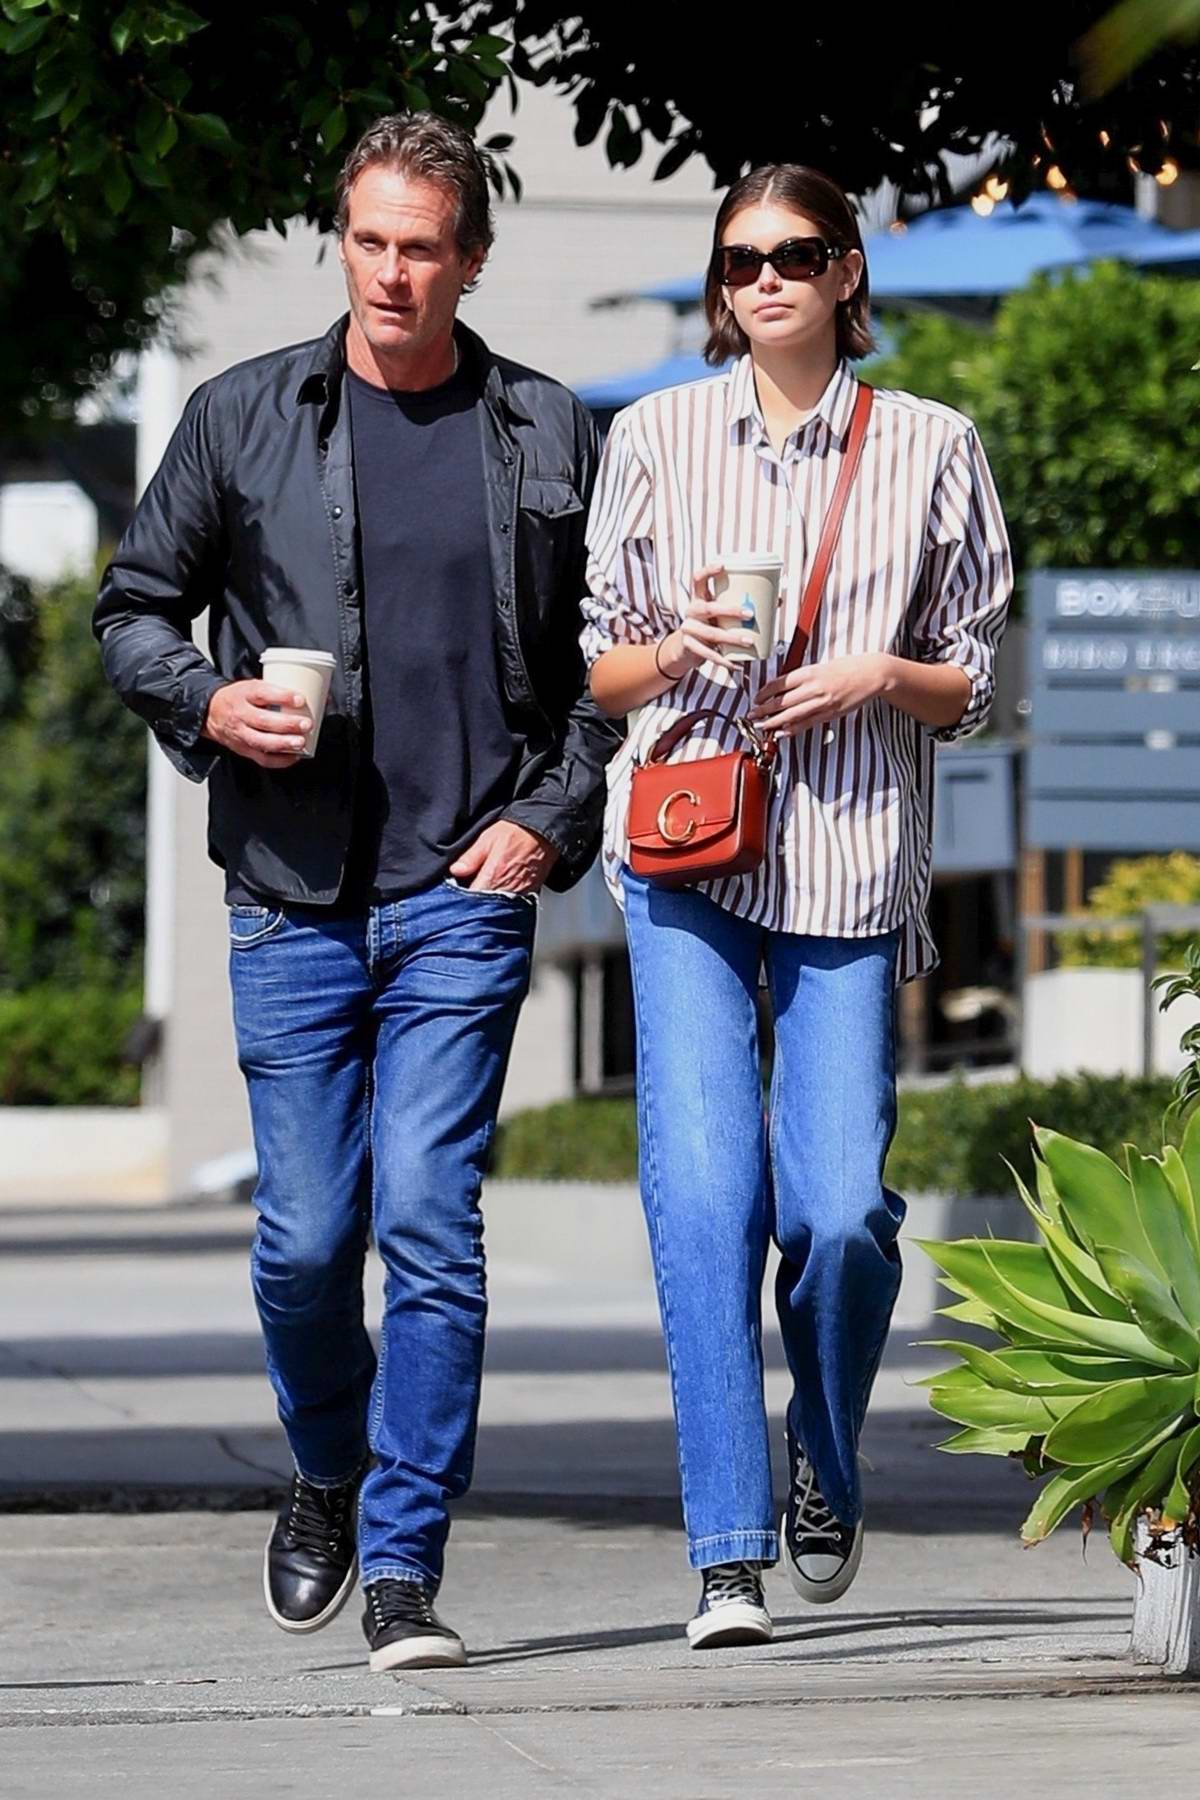 Kaia Gerber steps out for some coffee with her dad Rande Gerber in West Hollywood, California